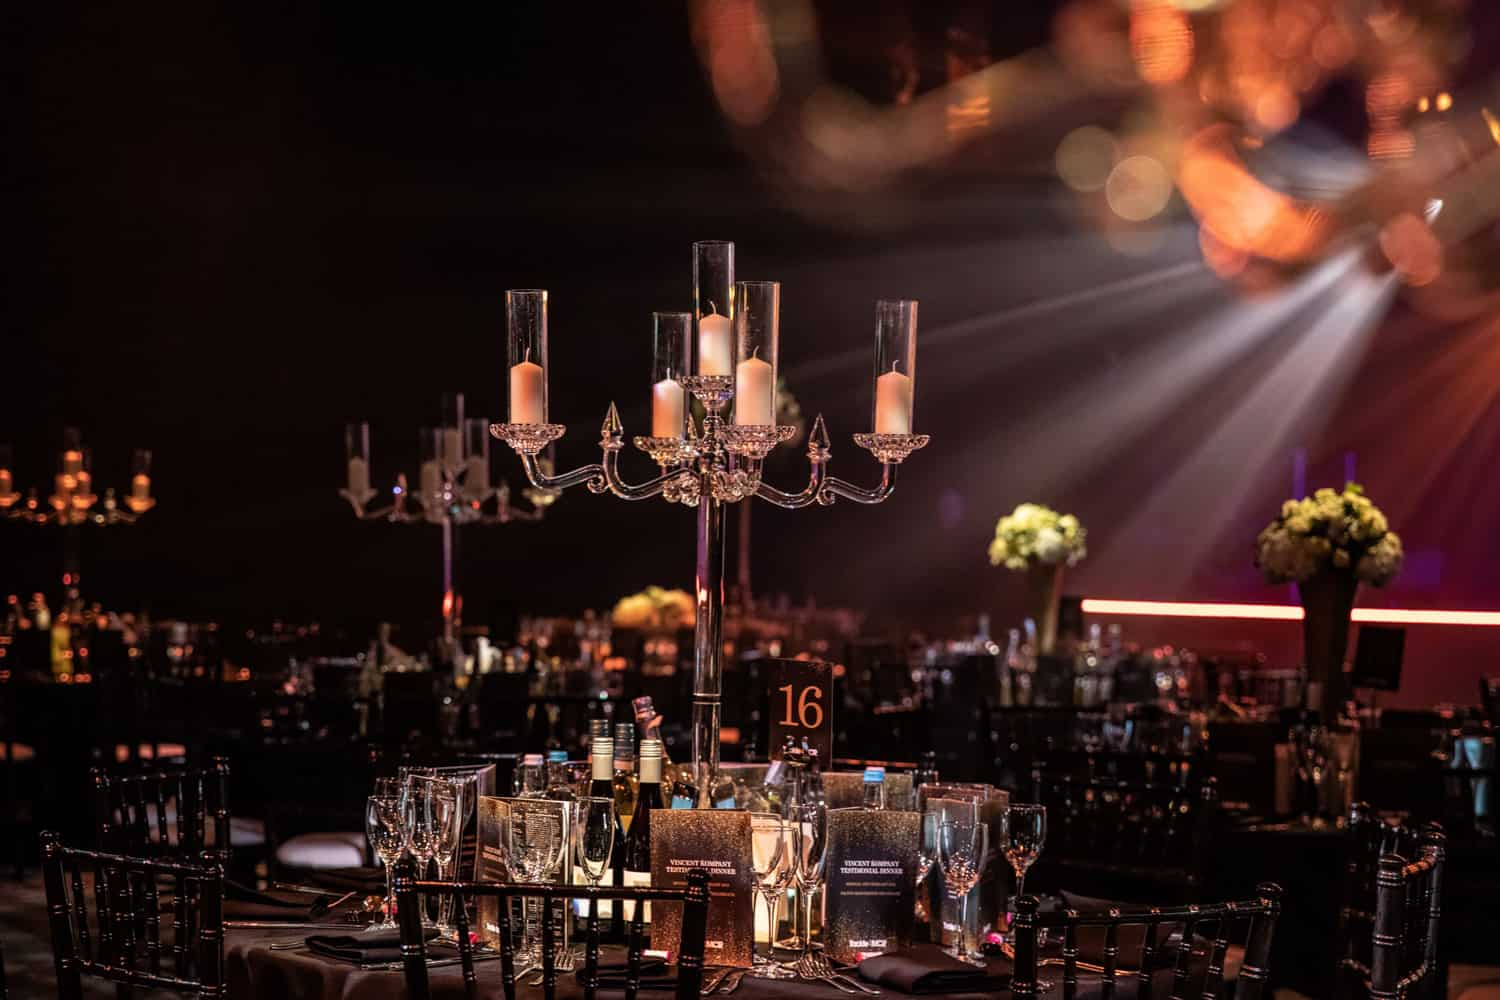 Venue dressing at the hilton manchester for your next celebrity event